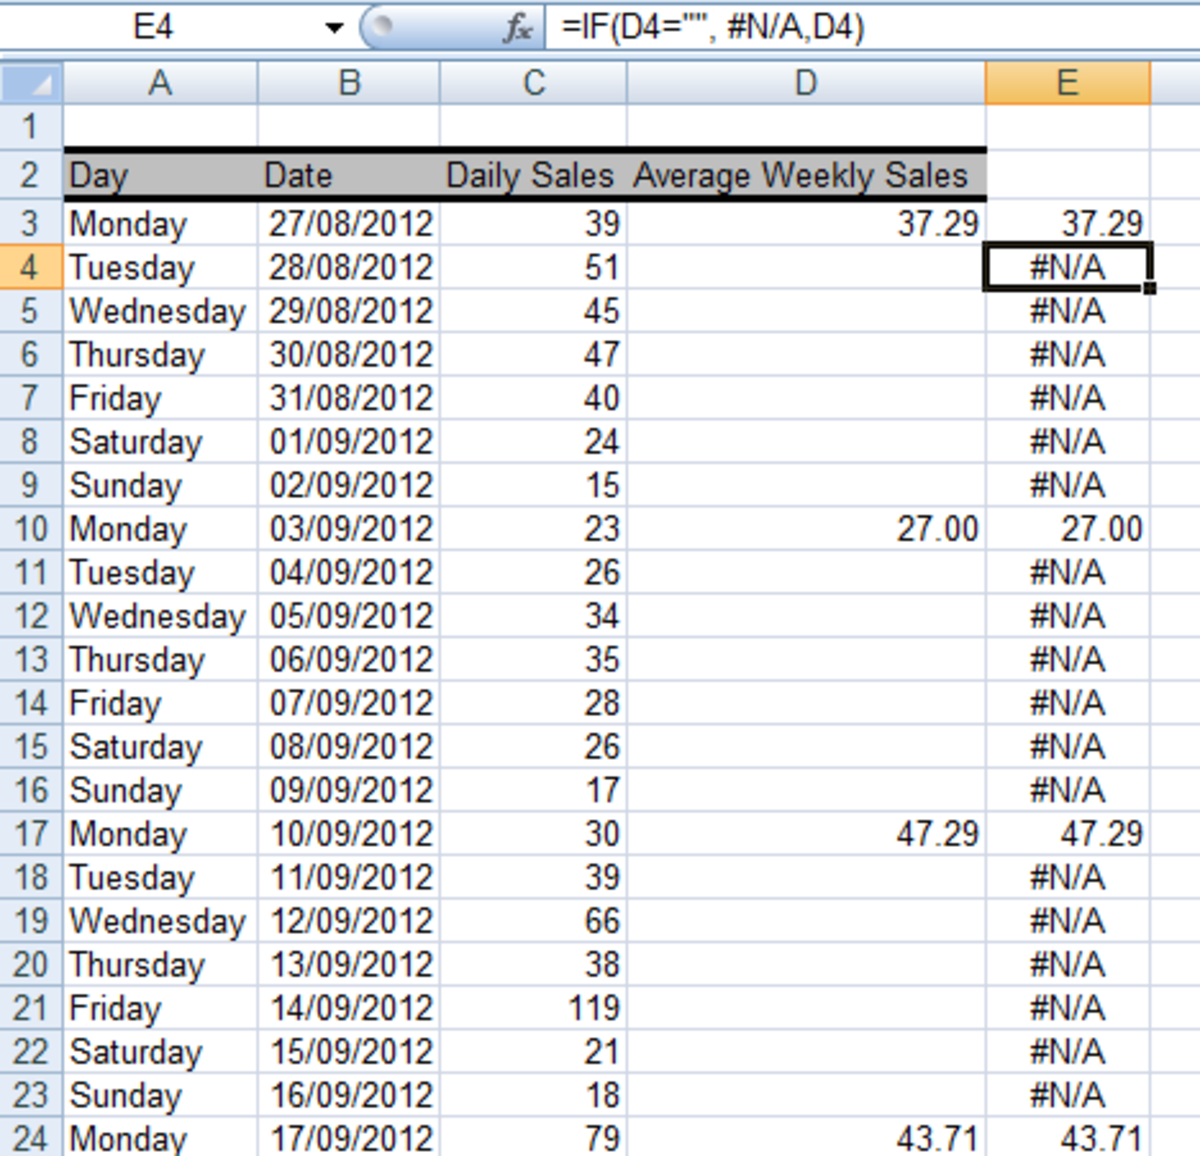 Ediblewildsus  Picturesque How To Get Excel  And  To Ignore Empty Cells In A Chart Or  With Licious Using The If Function In A Formula To Convert Empty Cells To Na With Awesome Excel Solver Also Excel Help In Addition If Then Excel And How To Search In Excel As Well As How To Find Duplicates In Excel Additionally Convert Pdf To Excel From Turbofuturecom With Ediblewildsus  Licious How To Get Excel  And  To Ignore Empty Cells In A Chart Or  With Awesome Using The If Function In A Formula To Convert Empty Cells To Na And Picturesque Excel Solver Also Excel Help In Addition If Then Excel From Turbofuturecom